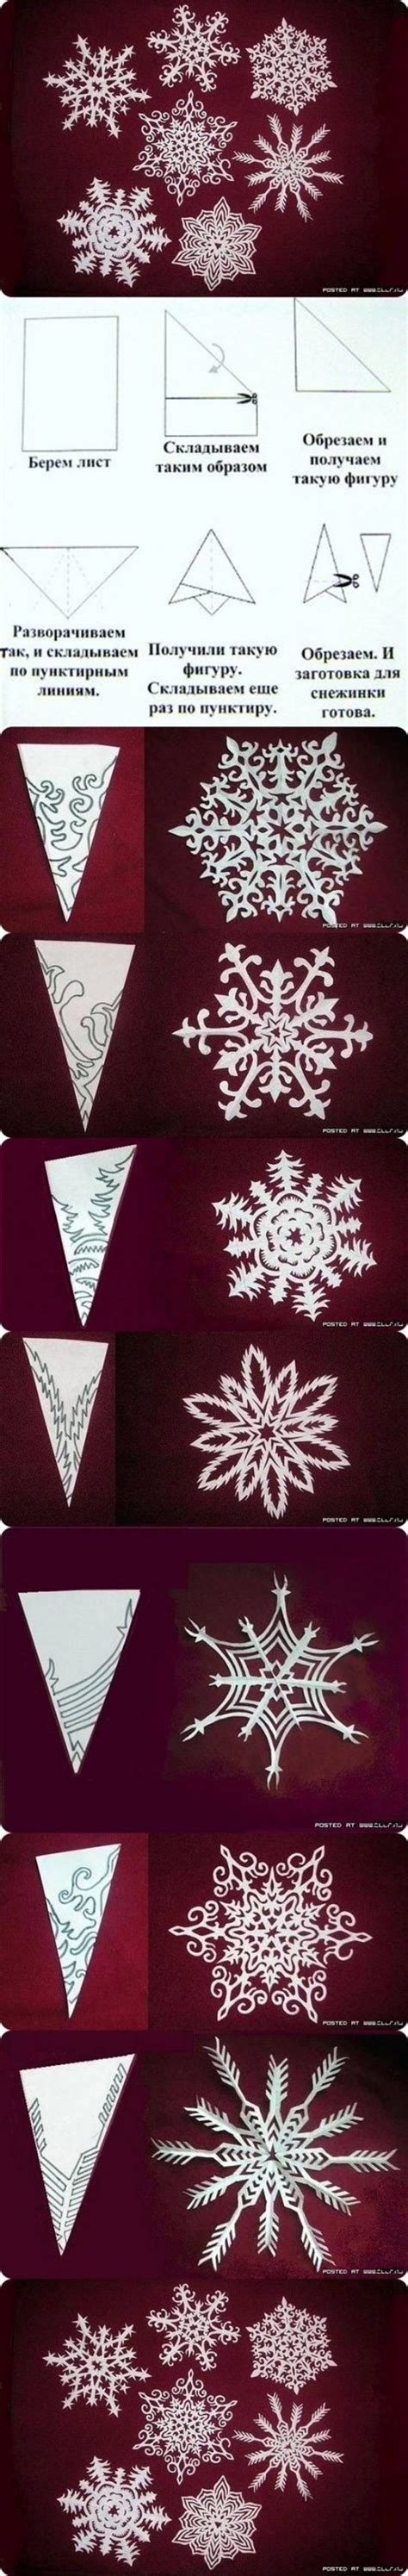 How To Make Snowflakes Paper - how to make snowflakes of paper step by step diy tutorial